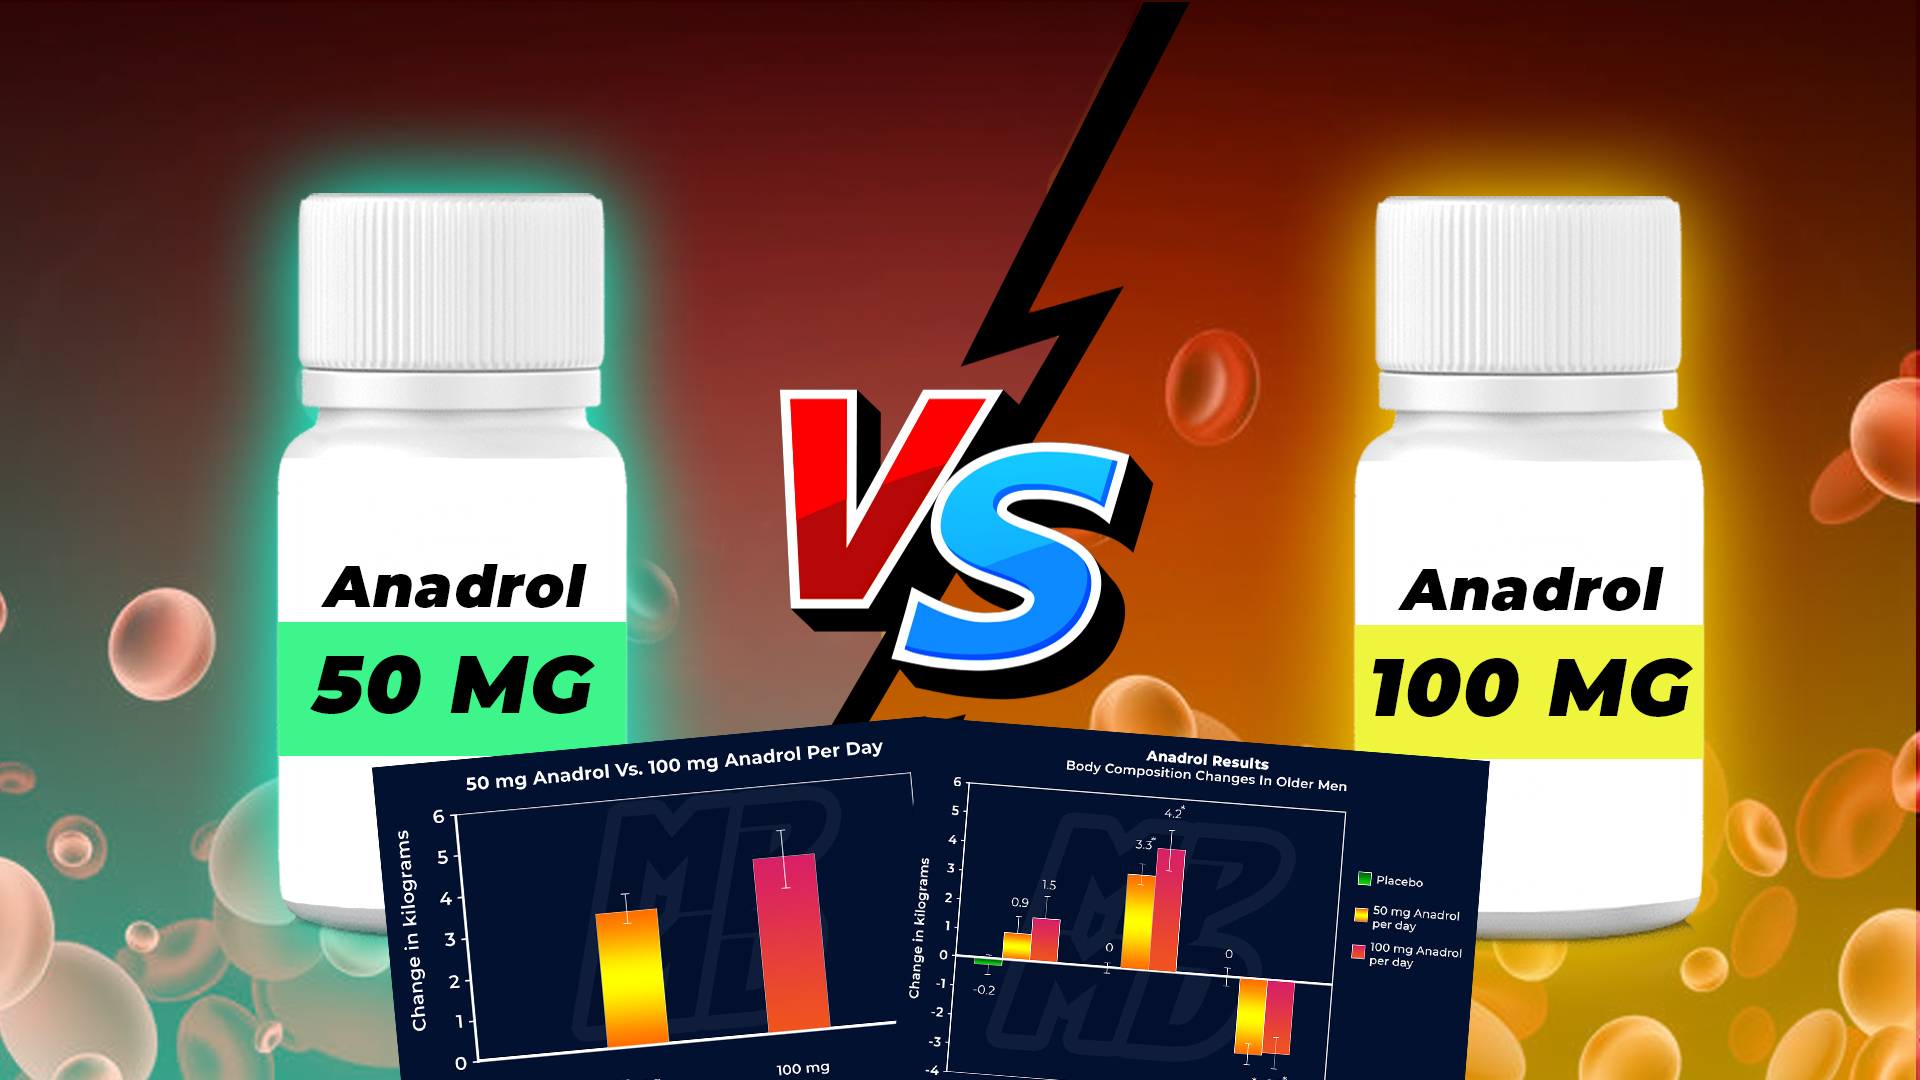 Moreplatesmoredates.com 50 mg Anadrol vs. 100 mg Anadrol per day, before and after muscle growth and fat loss results